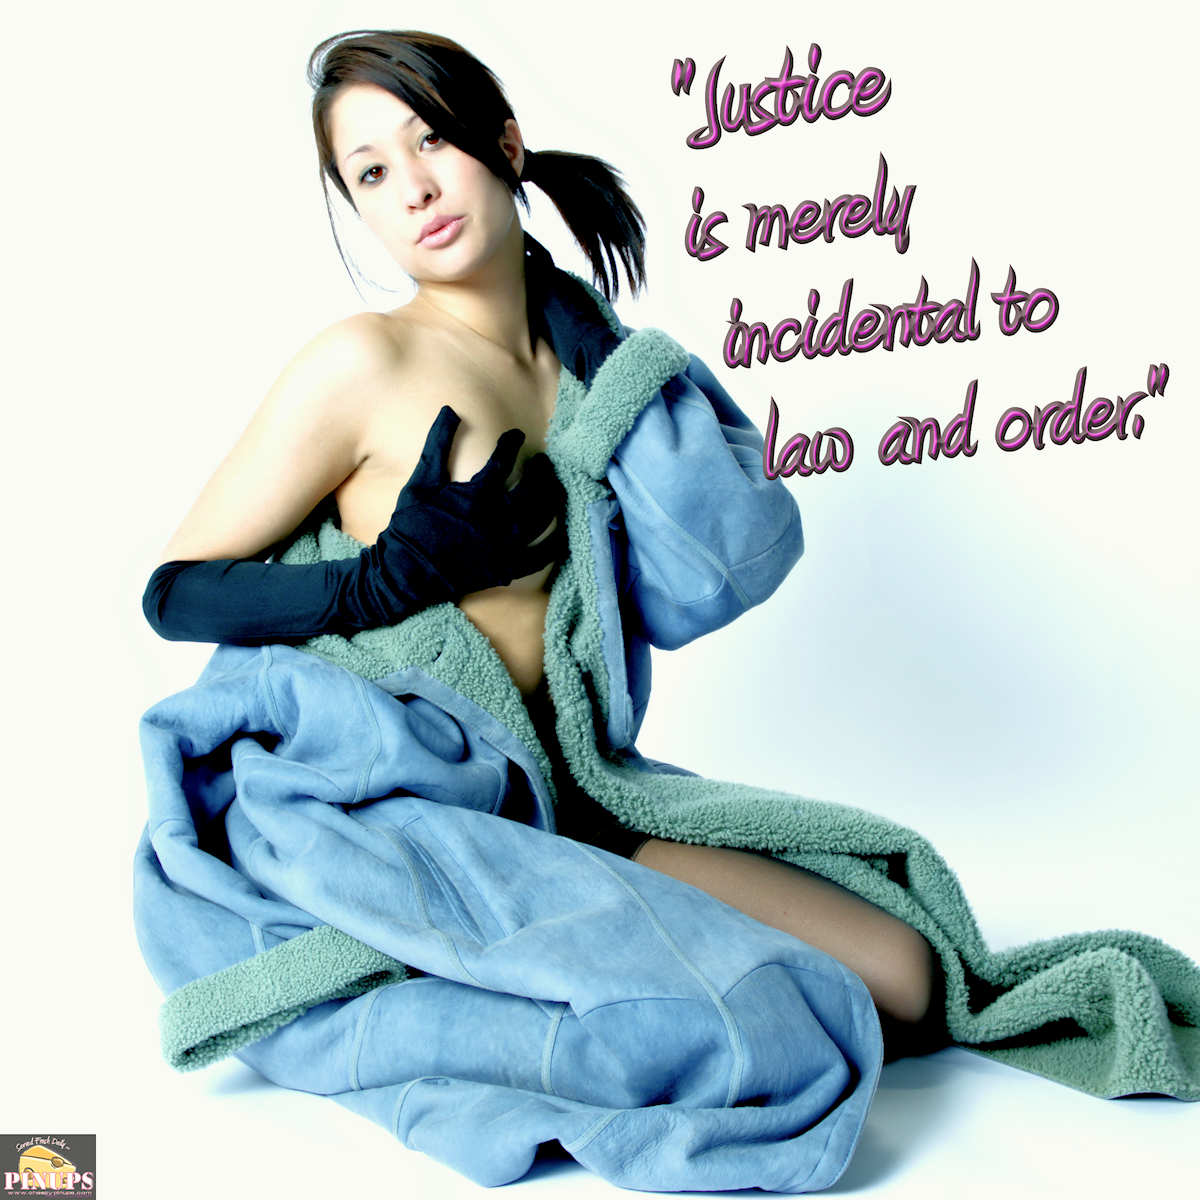 """""""Justice is merely incidental to law and order."""" - J. Edgar Hoover Model : Ashley B #justice #incidental #lawandorder #jedgarhoover #ashley #model #photography #pinup #implied #nikon #implied #quote #instagood #instadaily #instapinuppic.twitter.com/zQKBKNXv04"""